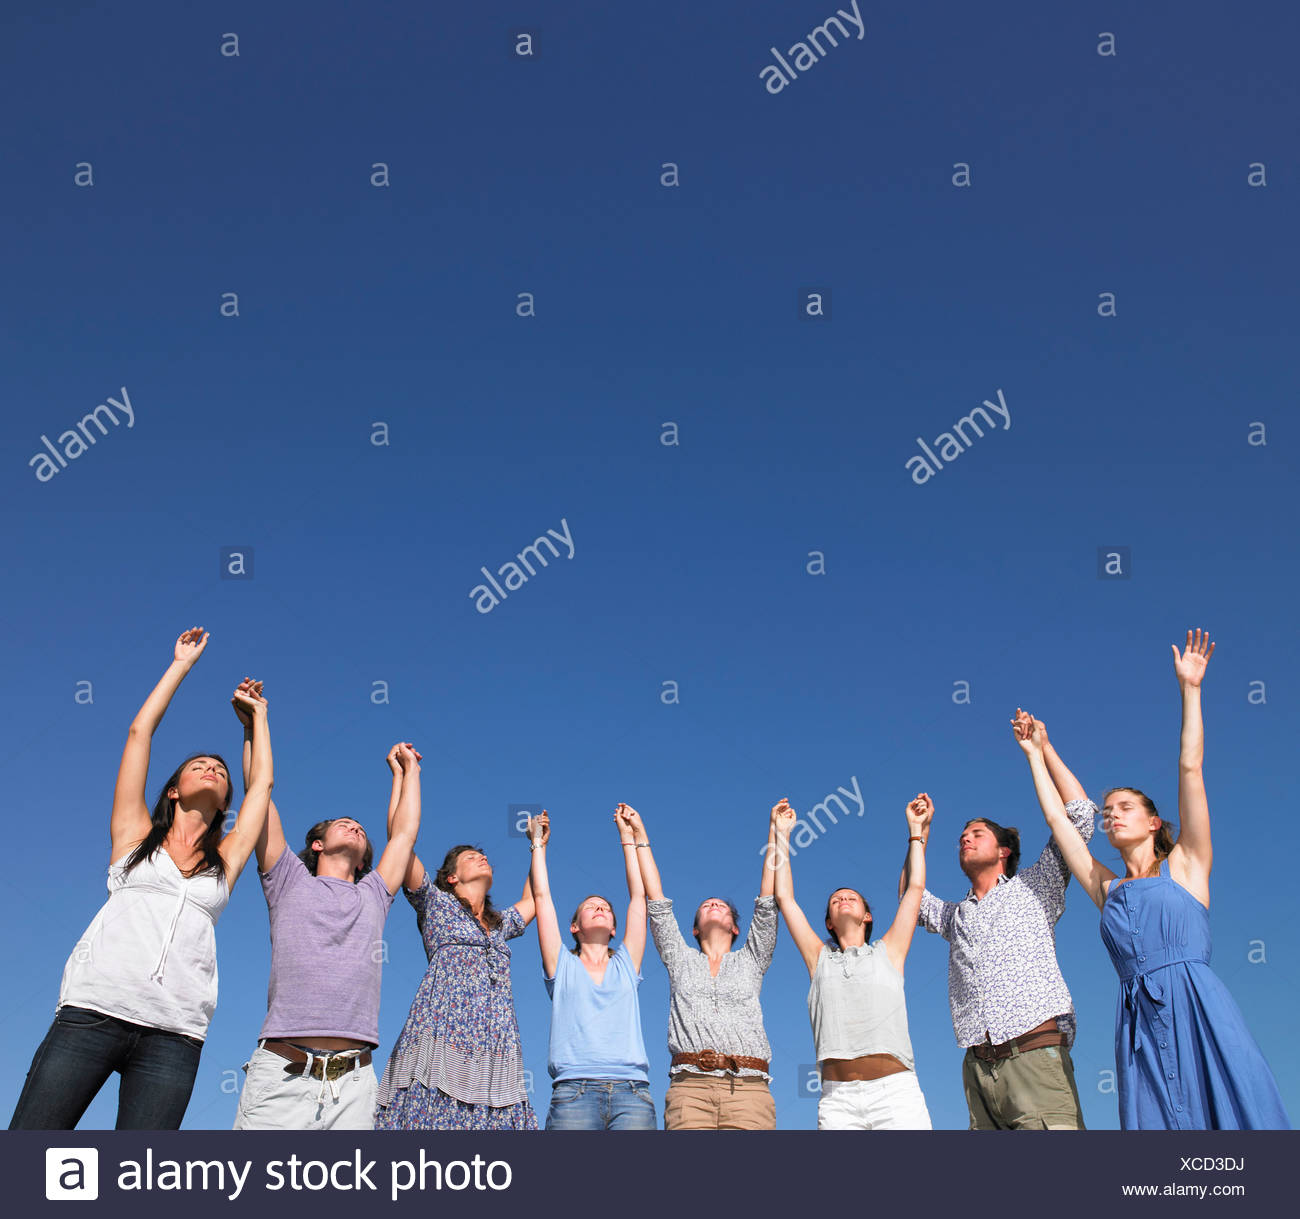 group of young people raising arms - Stock Image